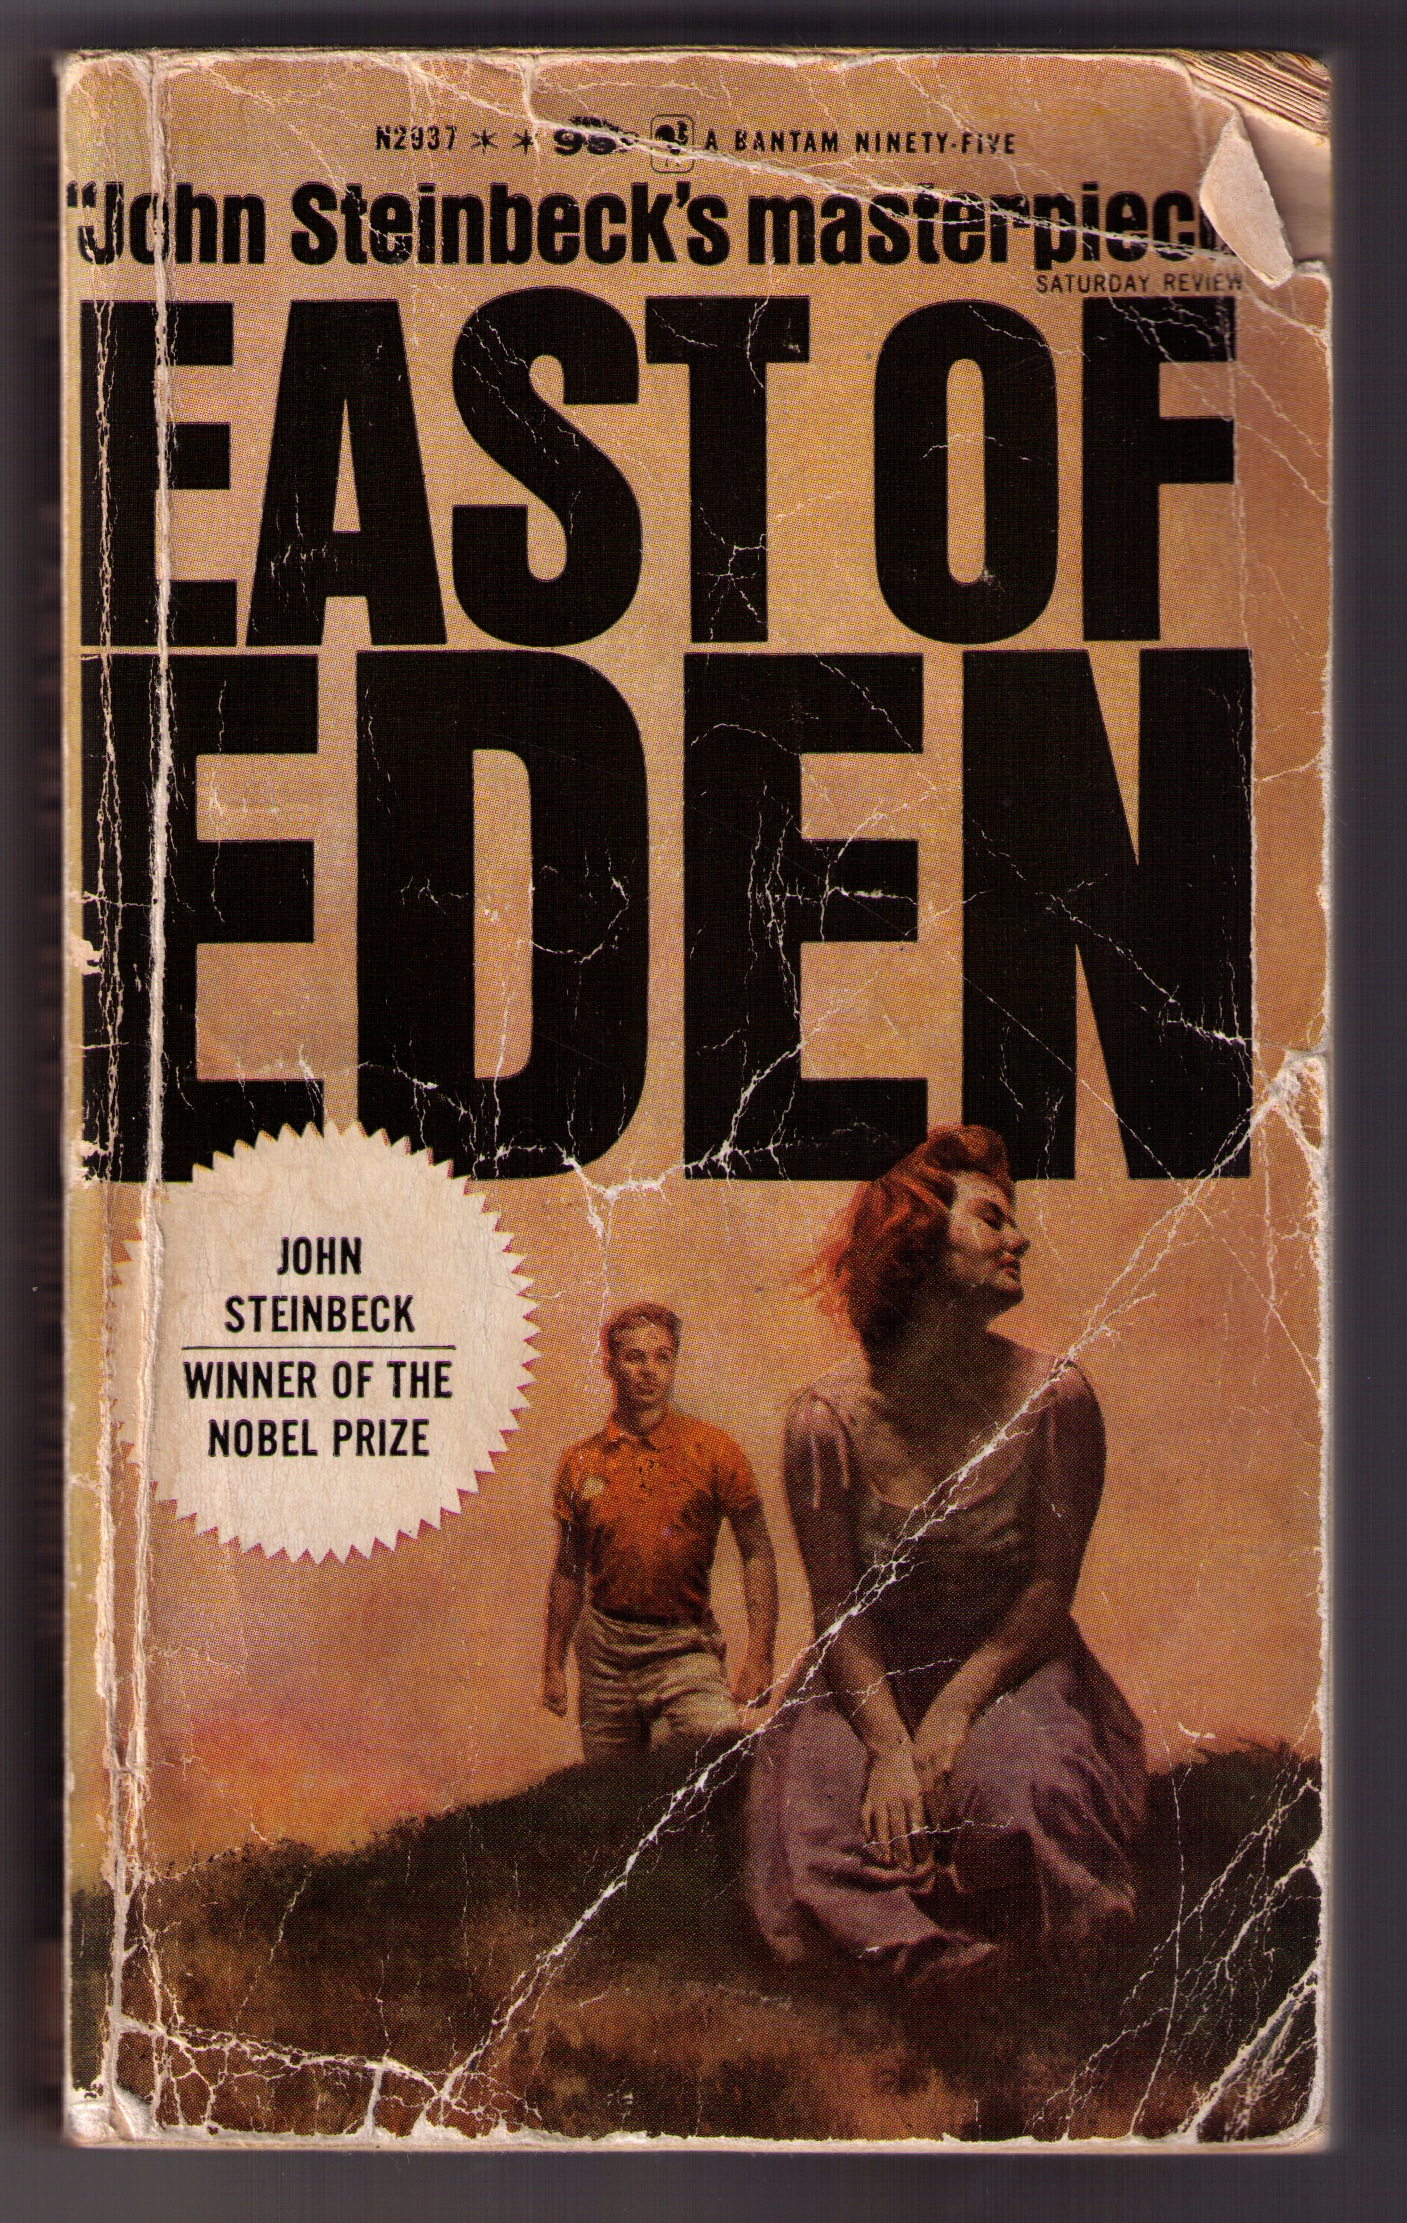 east of eden essay East of eden essays: over 180,000 east of eden essays, east of eden term papers, east of eden research paper, book reports 184 990 essays, term and research papers.